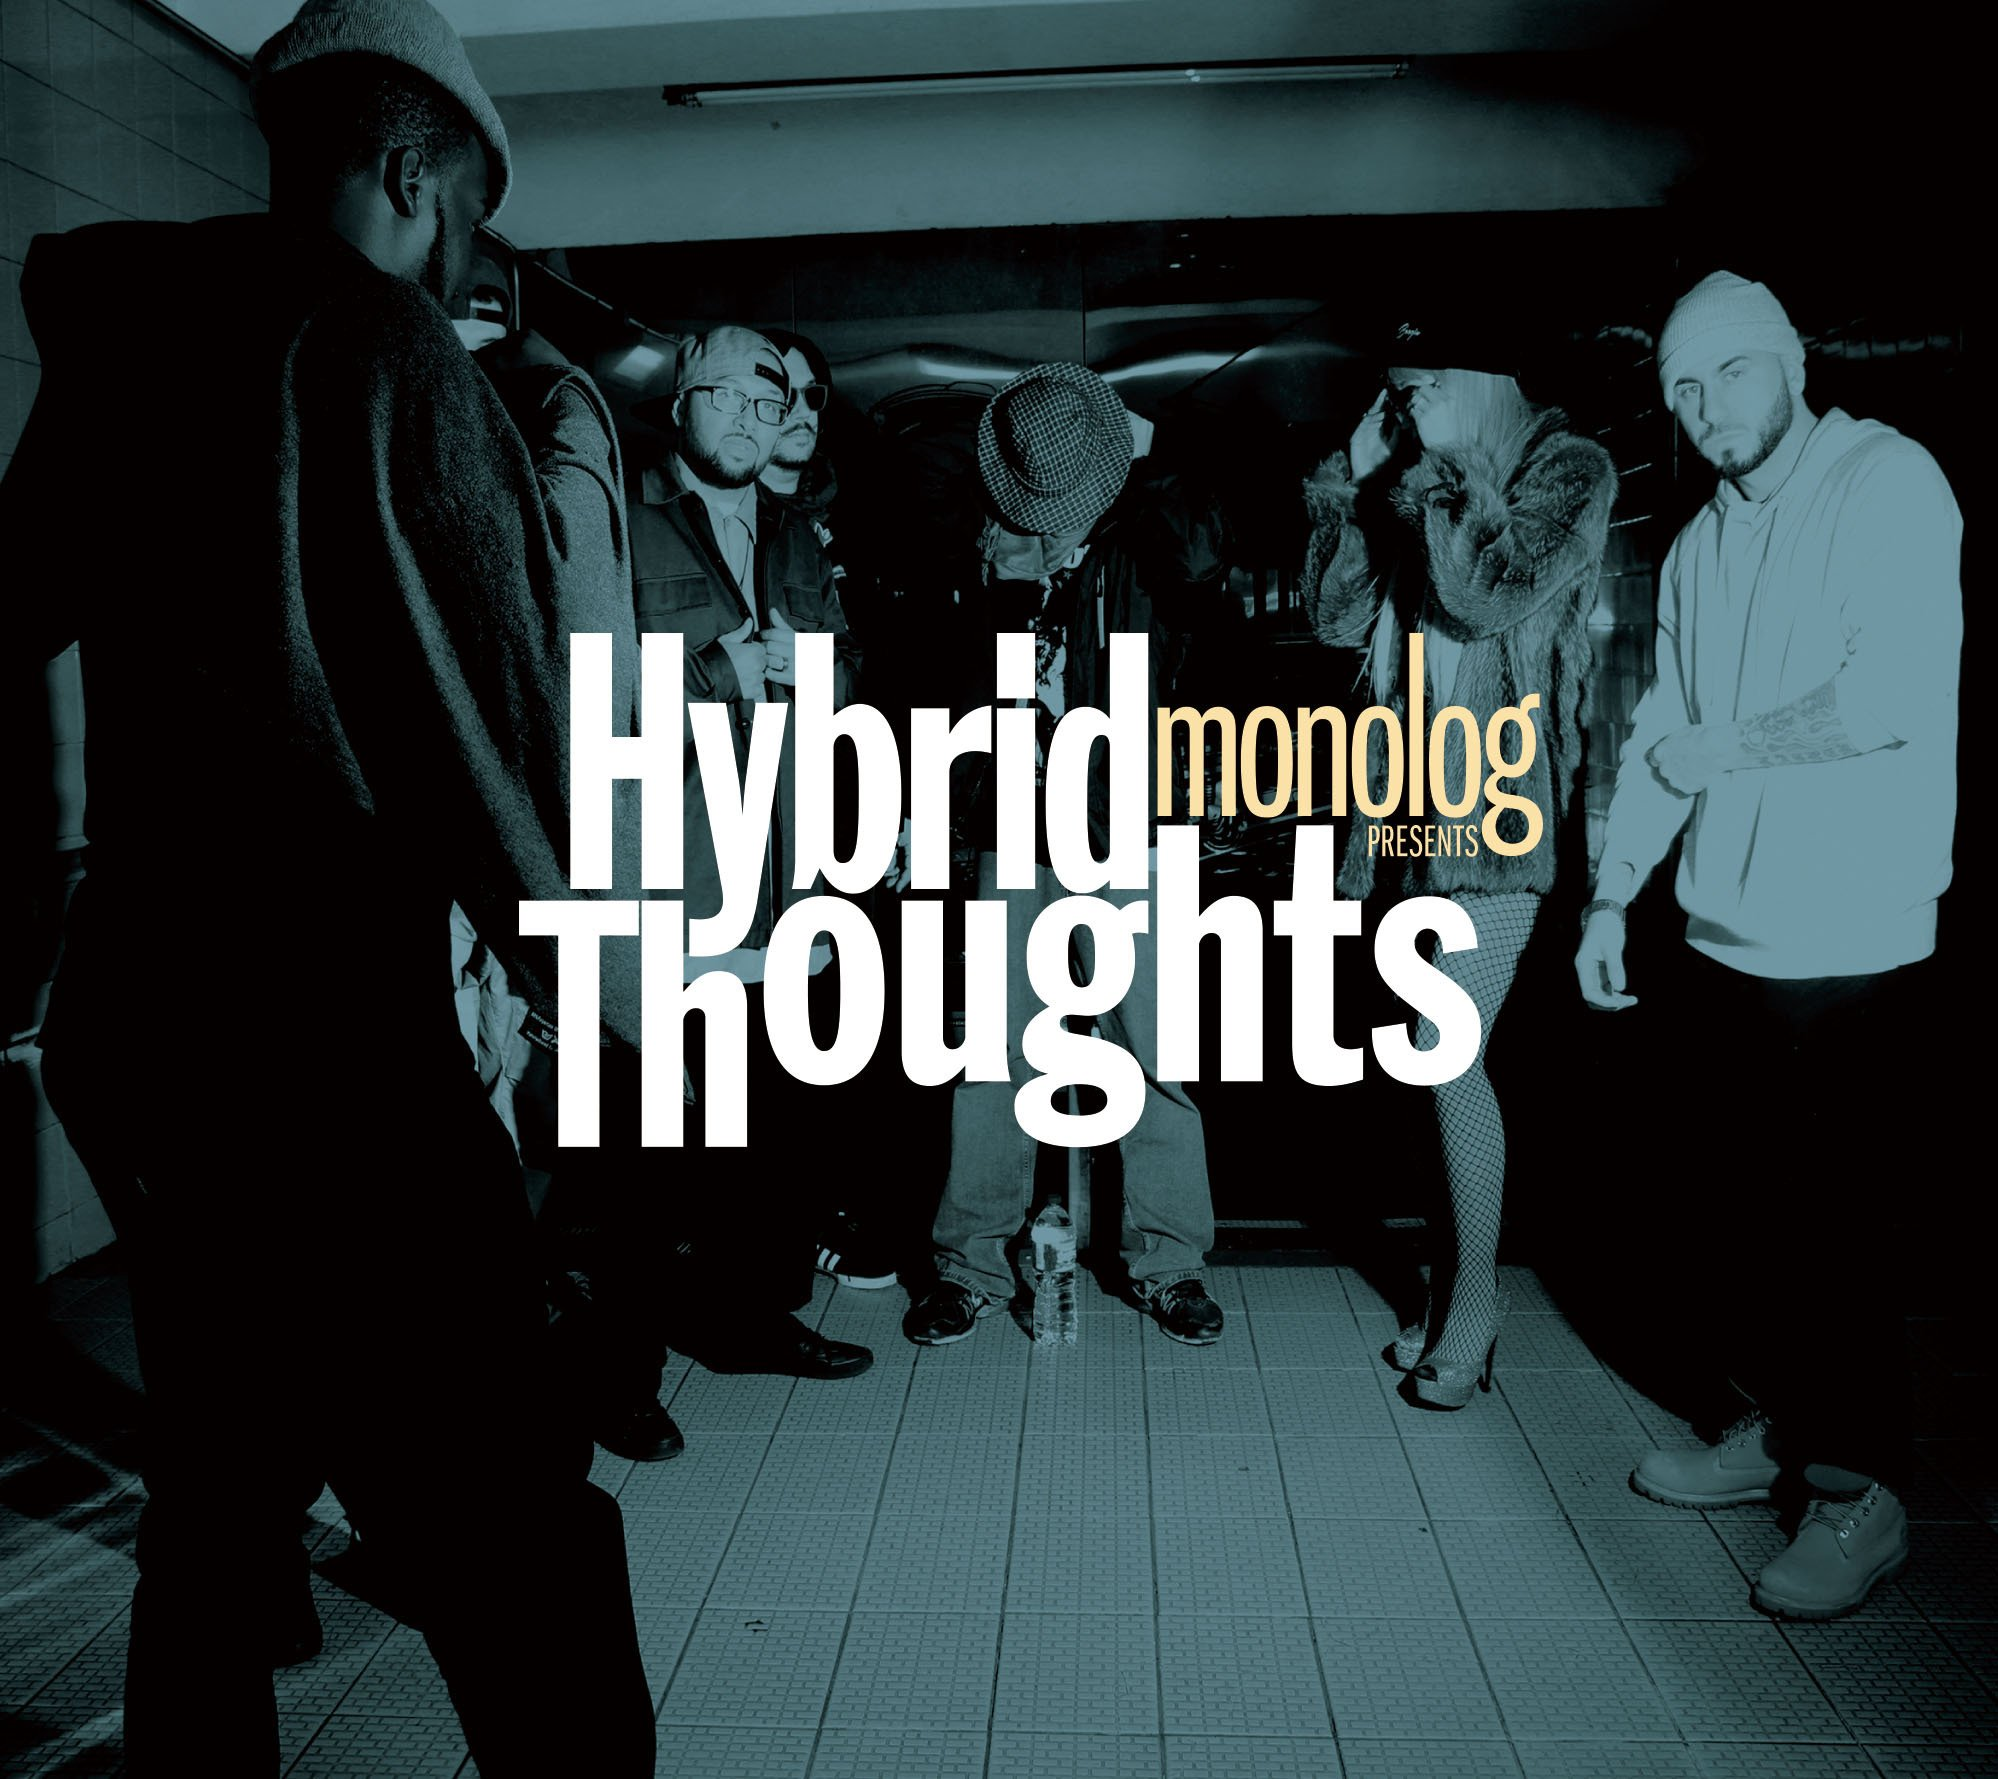 Hybrid Thoughts – Monolog Presents Hybrid Thoughts (2017) [FLAC]